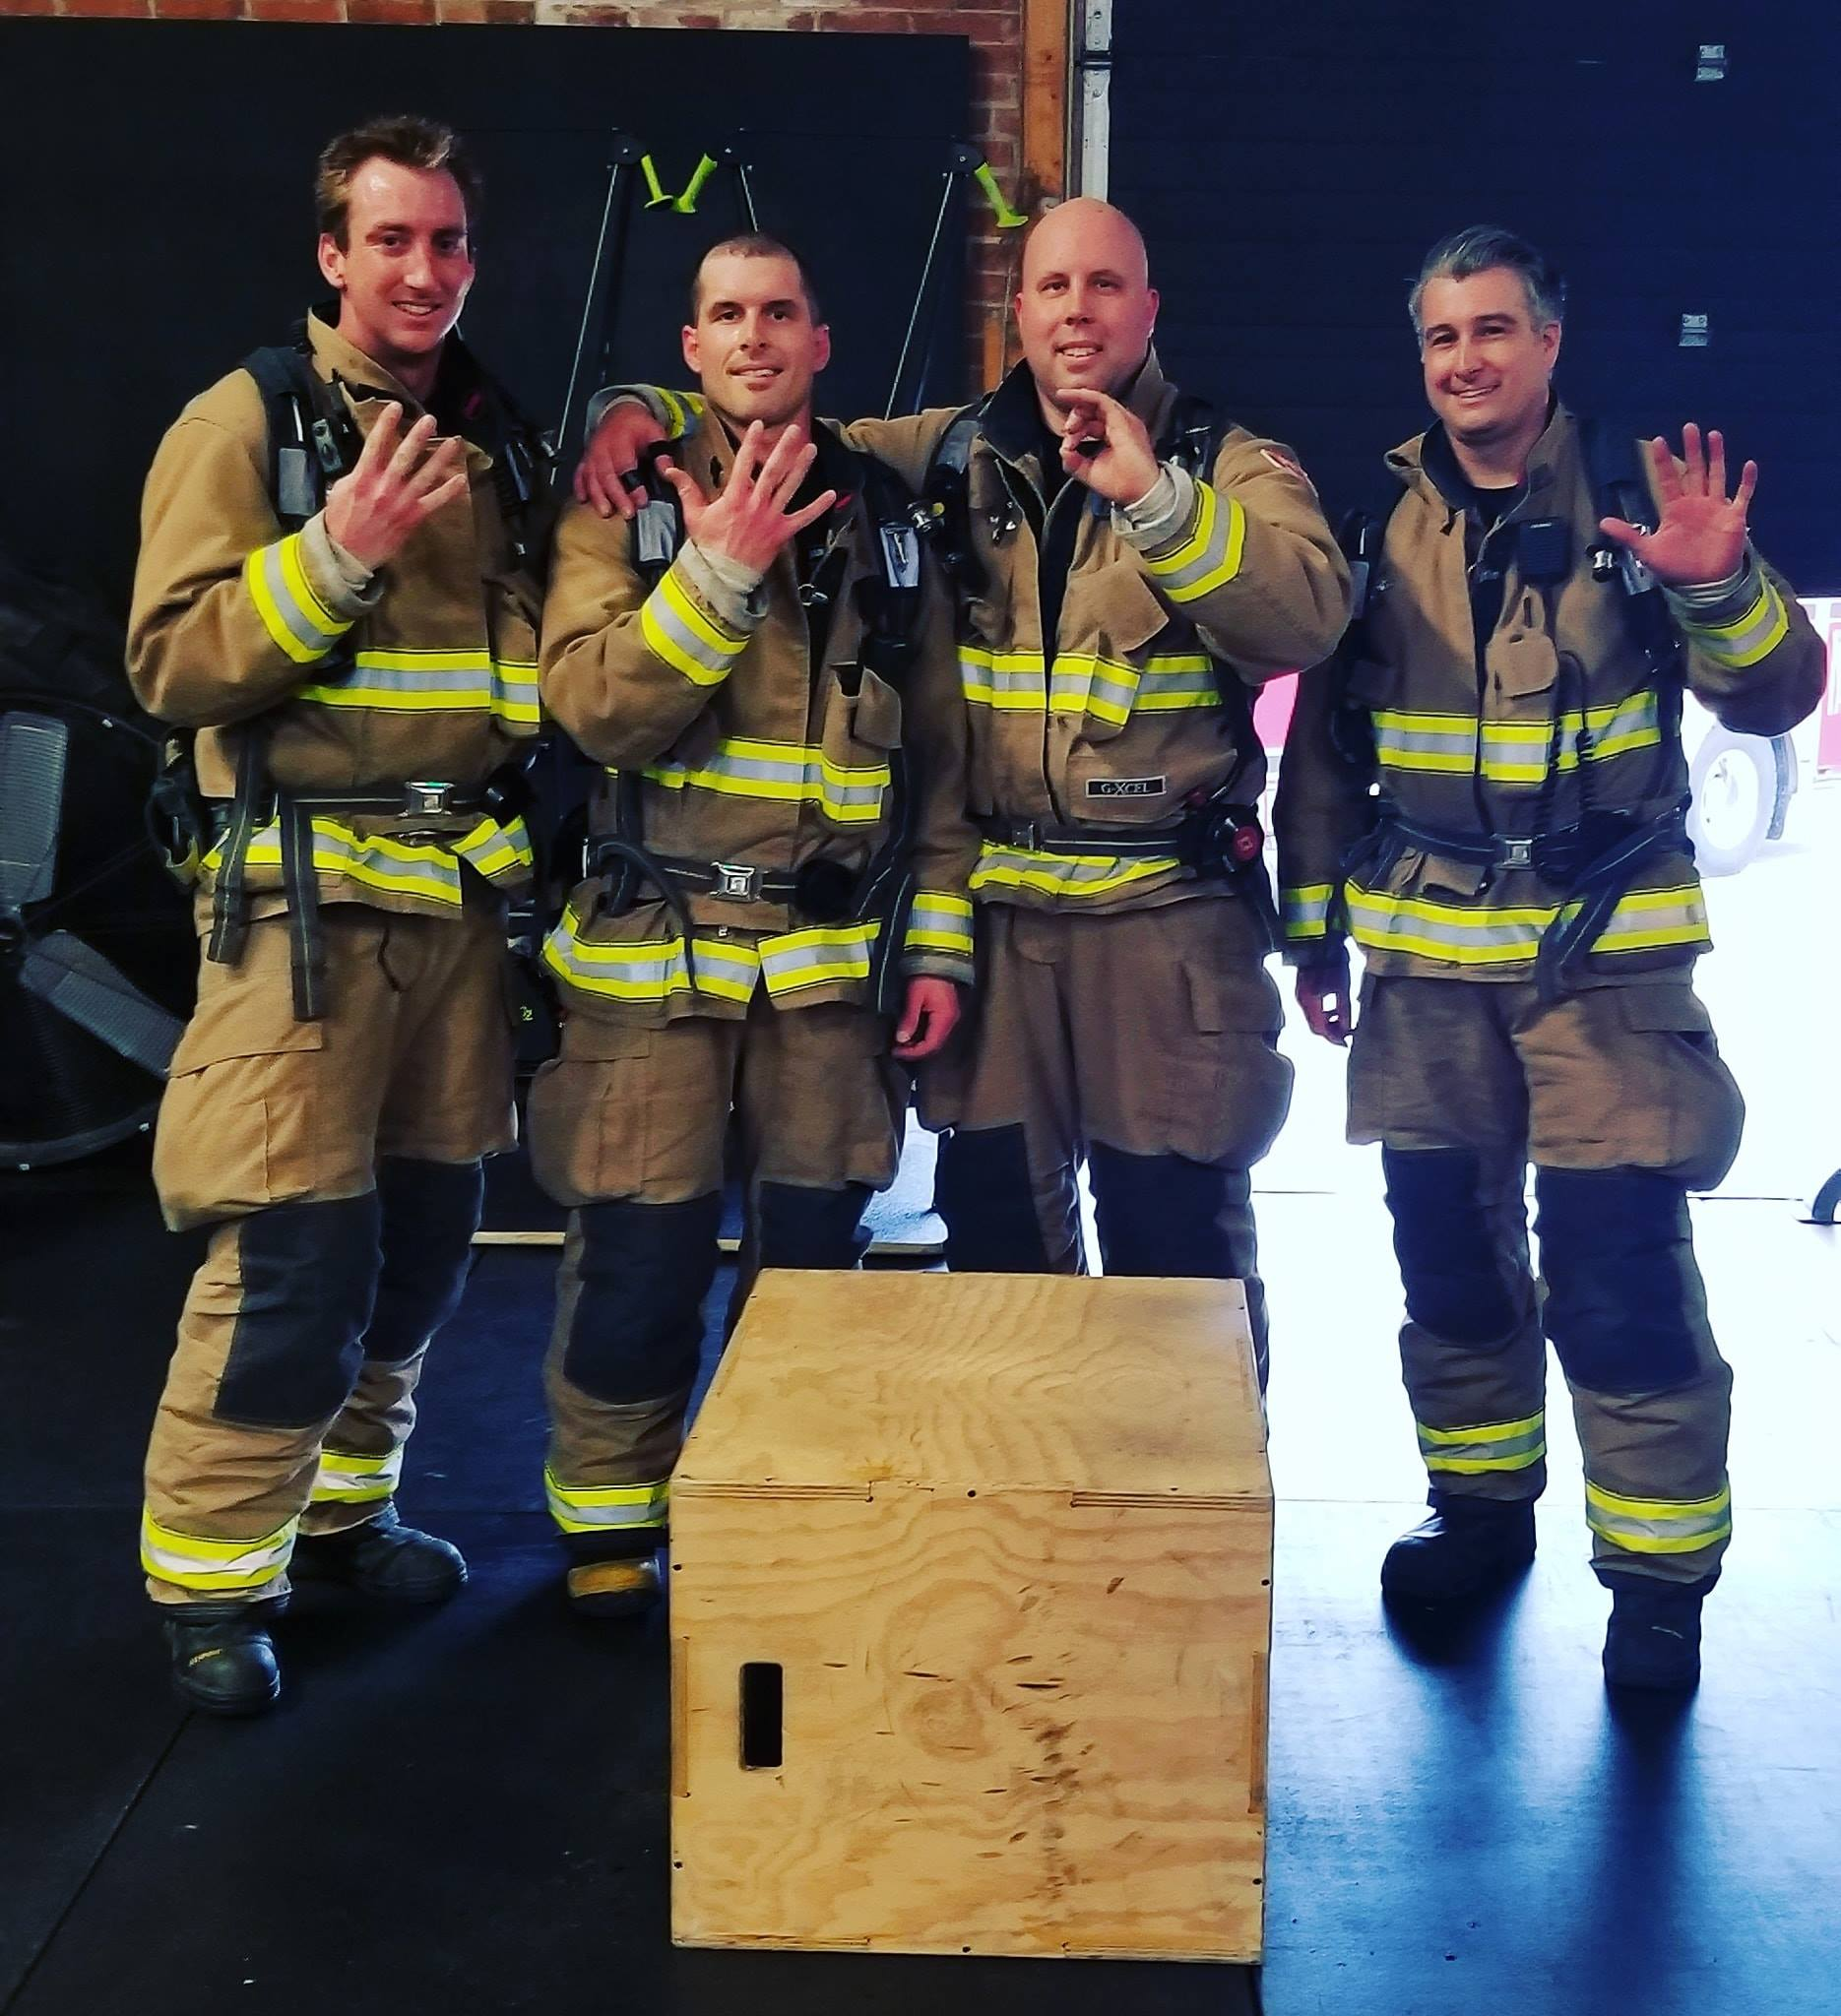 Jan. 5th - Our members took on HERO WOD CHAD. 1000 Step ups for time with weight. We also had some special guests join us: Thanks to The Brantford Fire Department for attending our hero WOD event today and raising awareness for mental health and PTSD. They took on